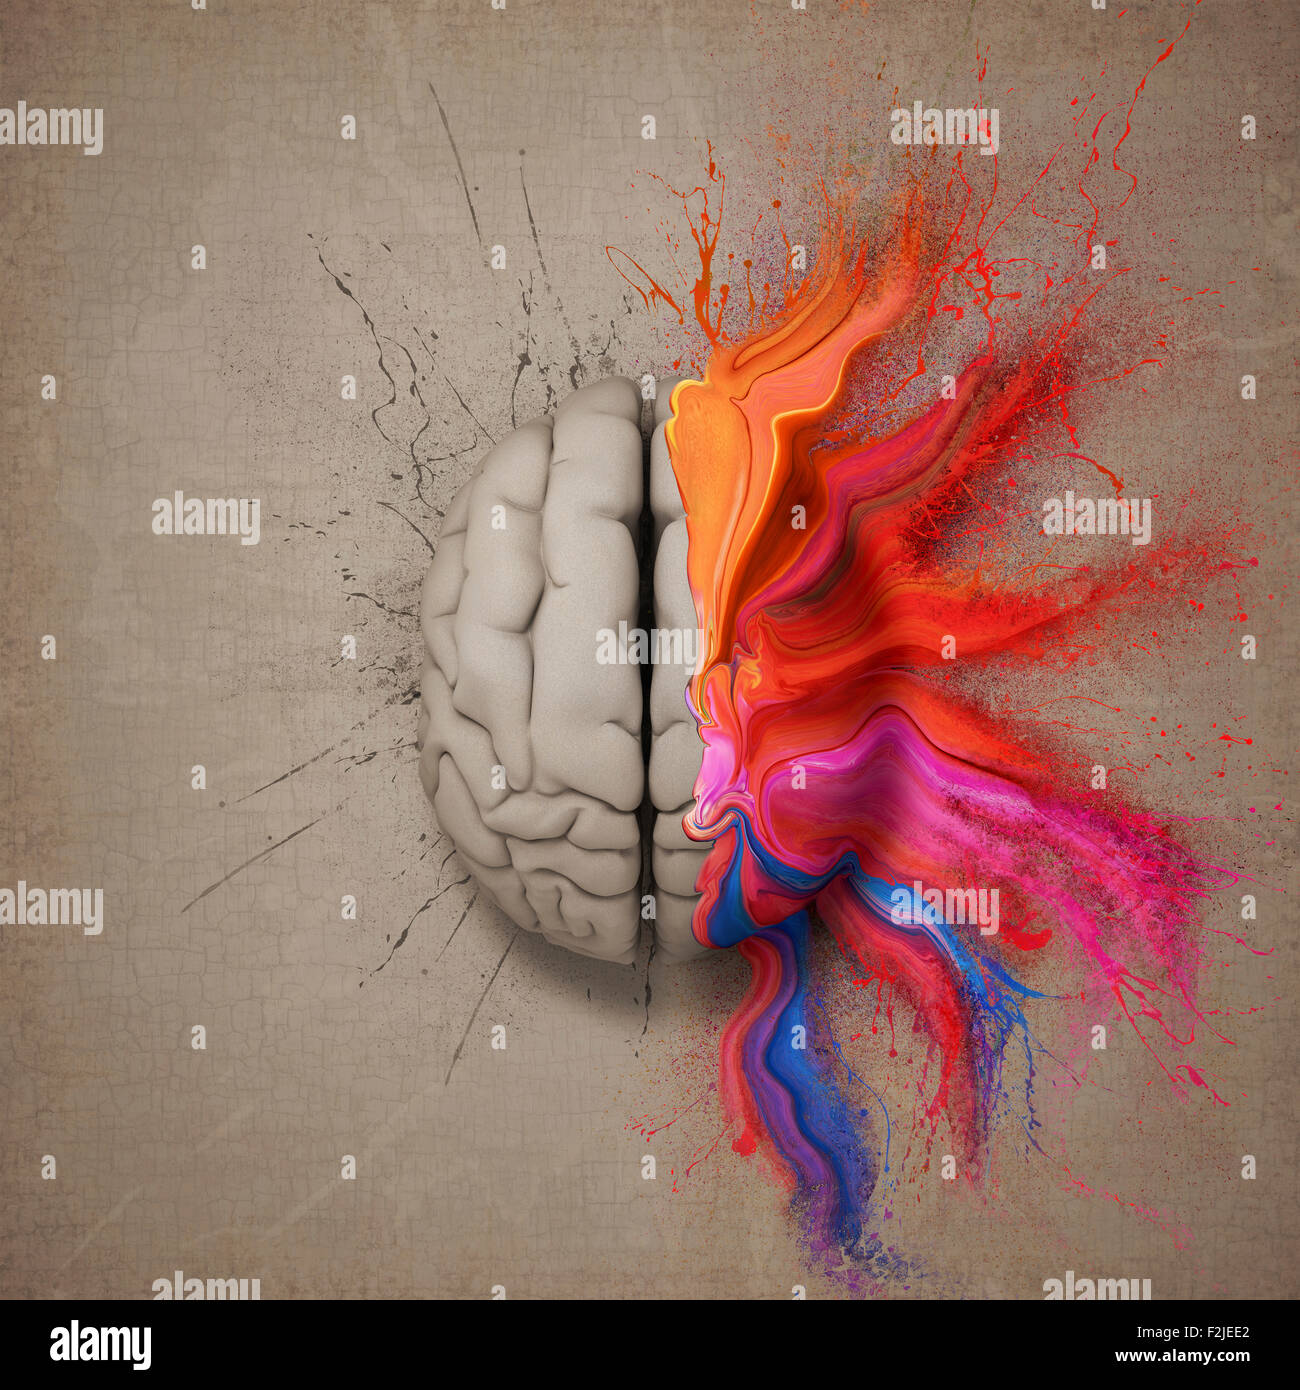 Creative mind or brain illustrated with colourful paint splatter and dispersion. Conceptual computer artwork. - Stock Image